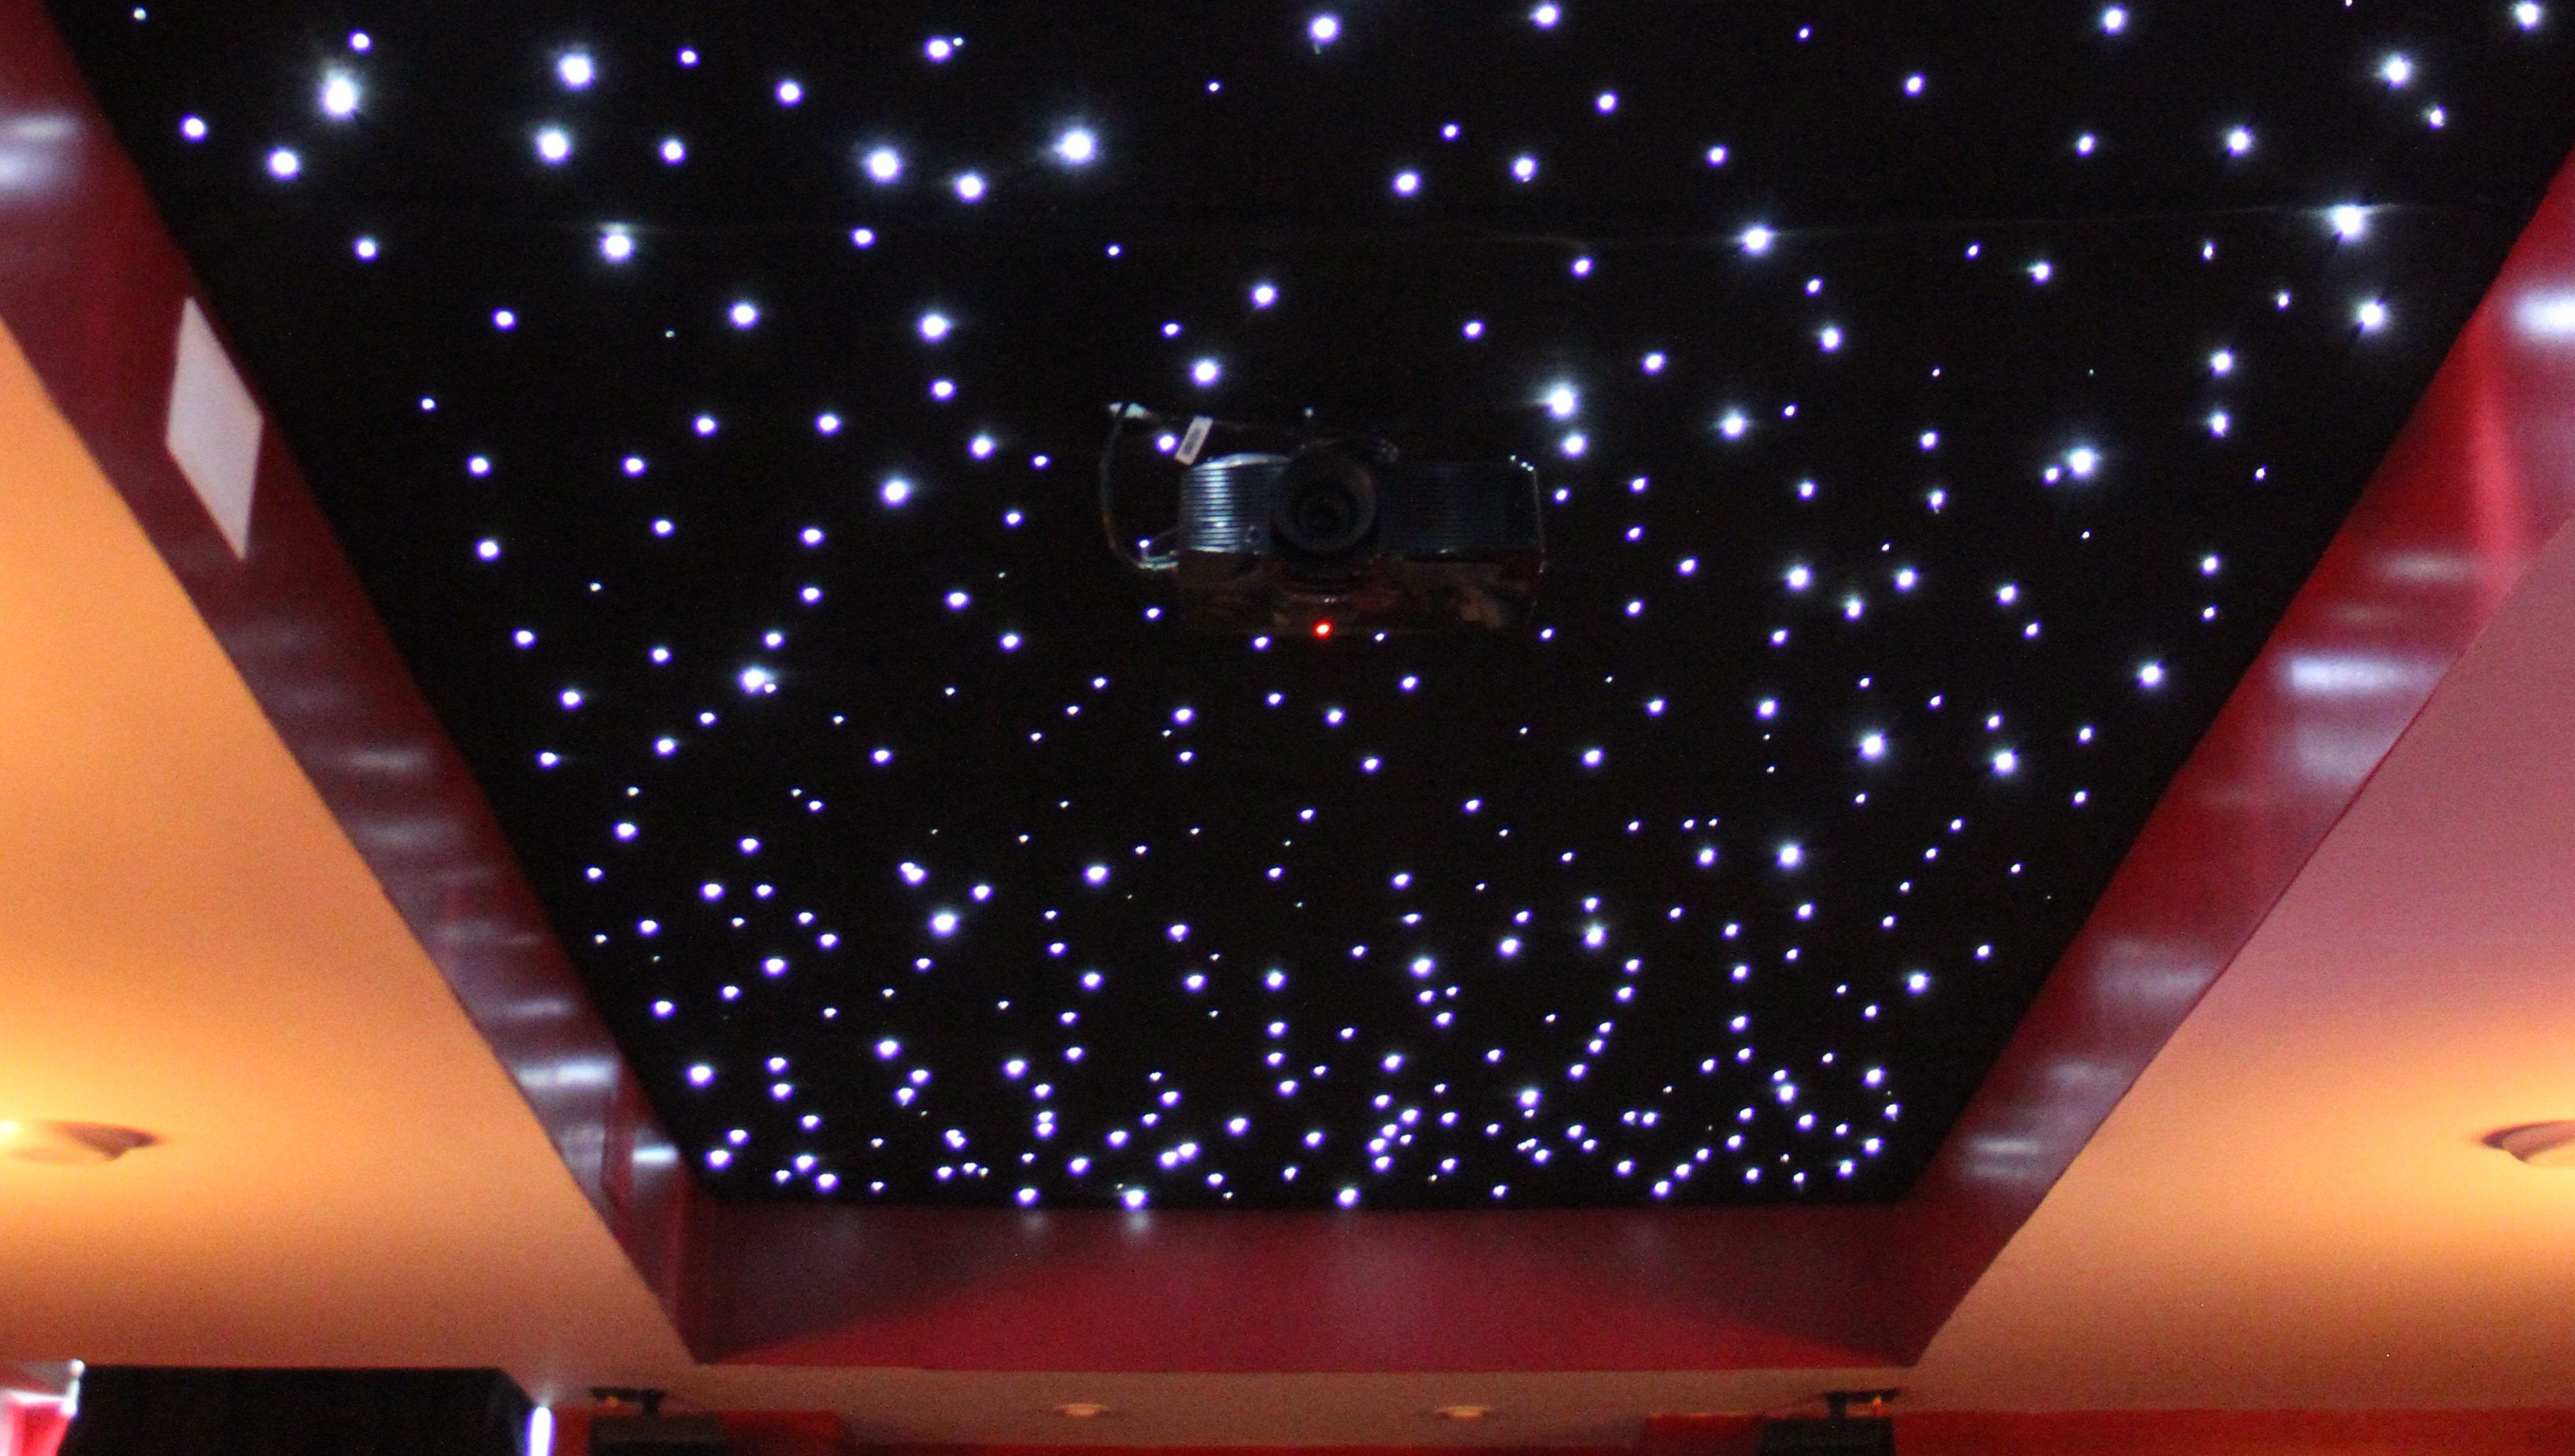 Installing A Fiber Optic Starfield Ceiling Make Star Ceiling